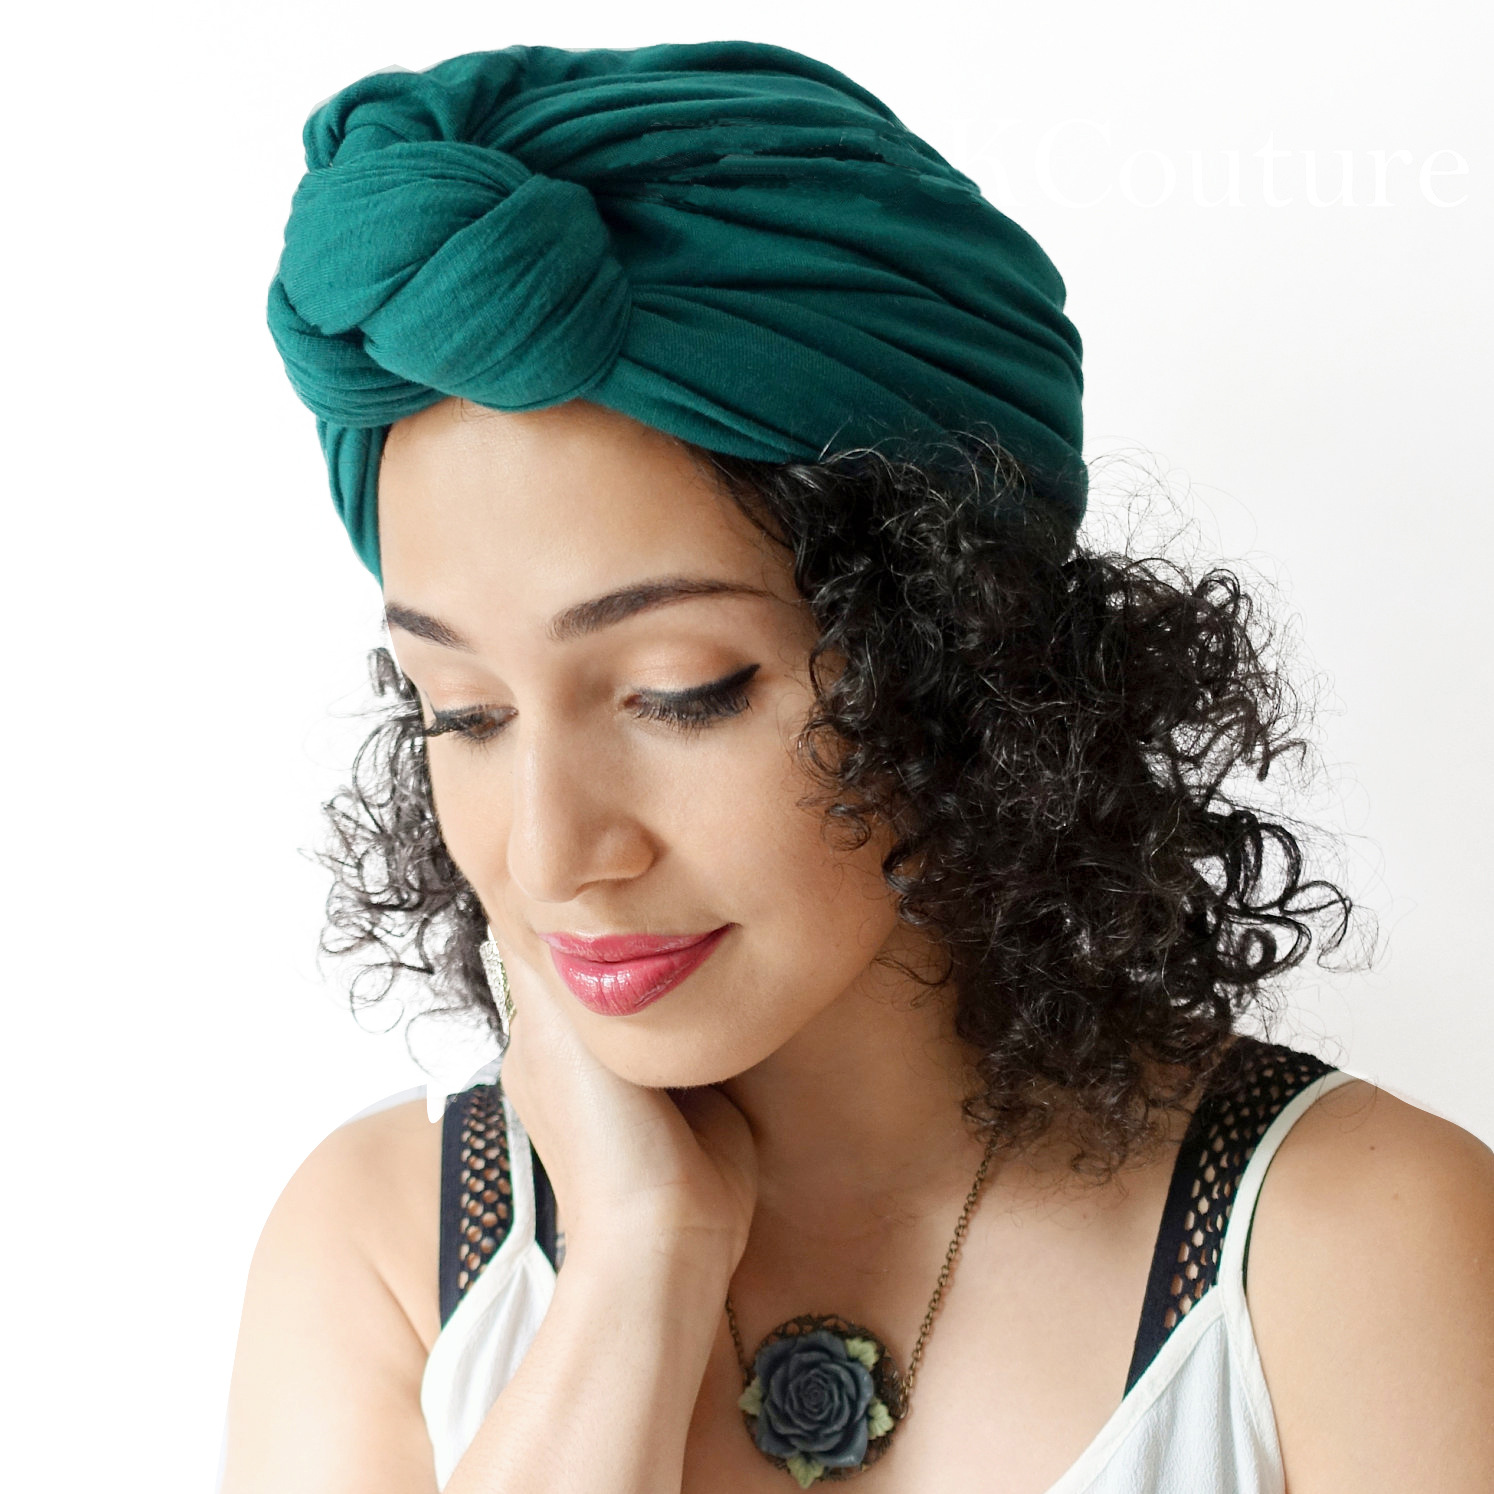 New Women Knotted Turban Hat Chemo Cap Headbands Muslim Turban For Women Caps  Muslim Turban